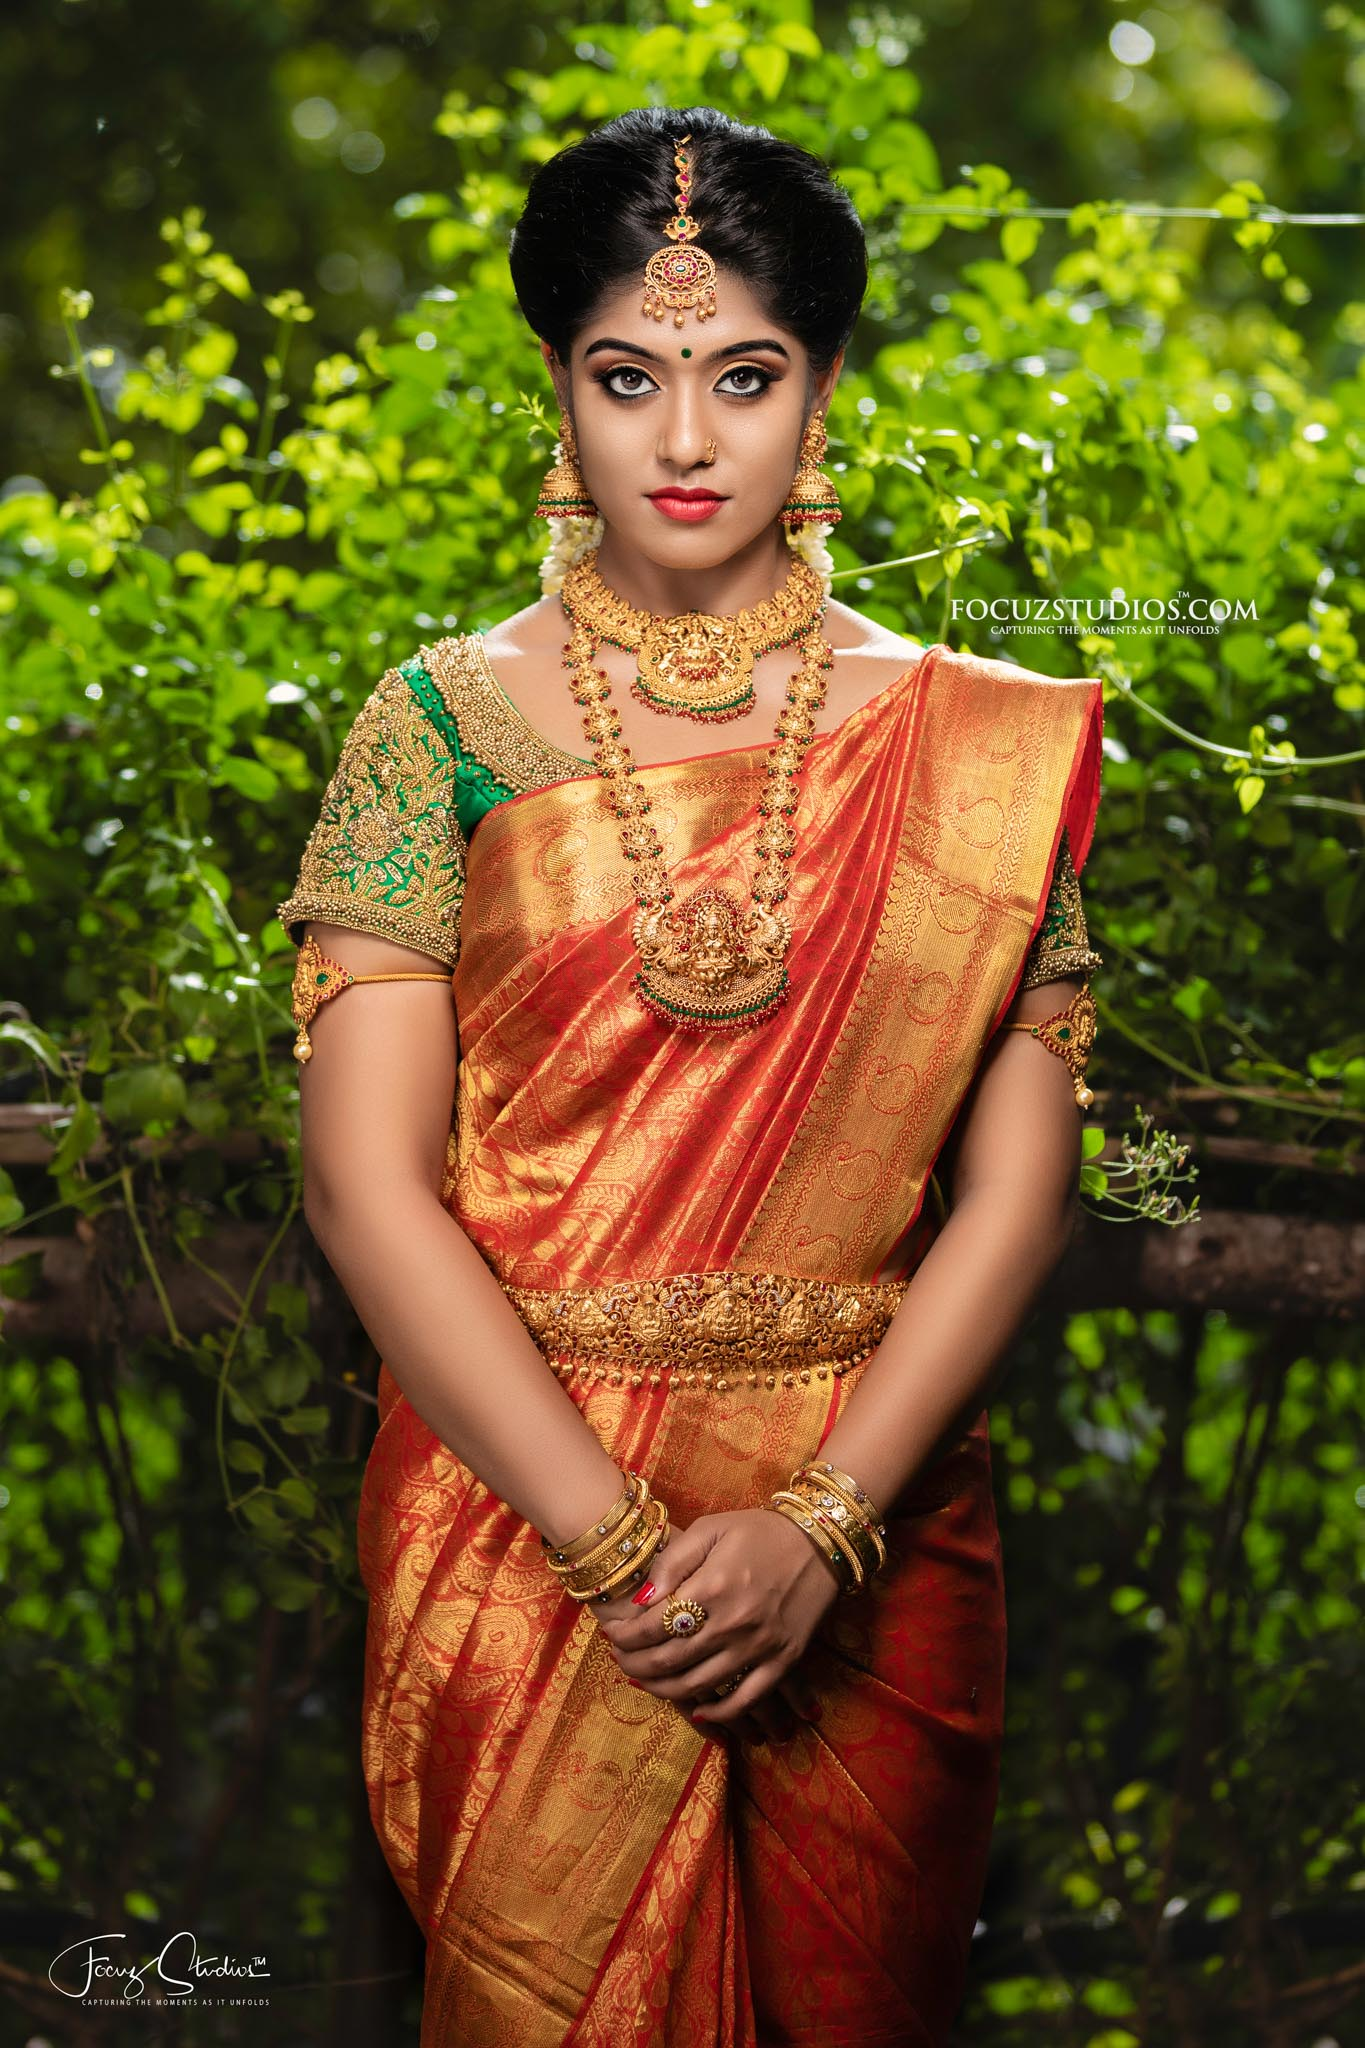 Best Candid Wedding Photographers Chennai Tamilnadu Focuz Studios